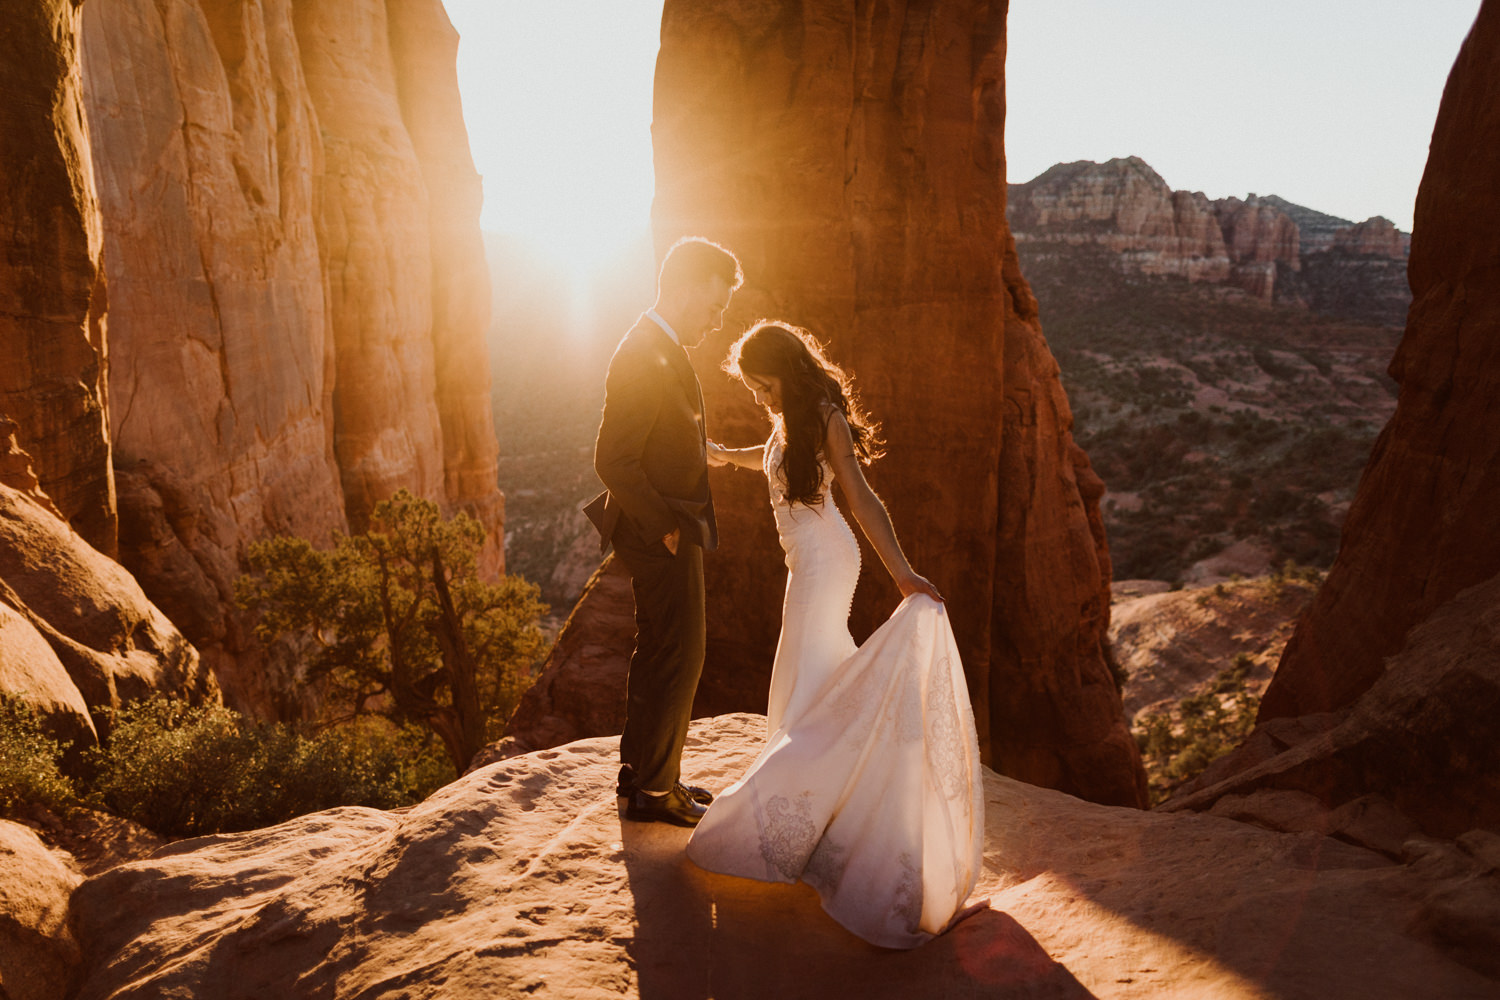 68_intimate-sedona-arizona-wedding-94.jpg